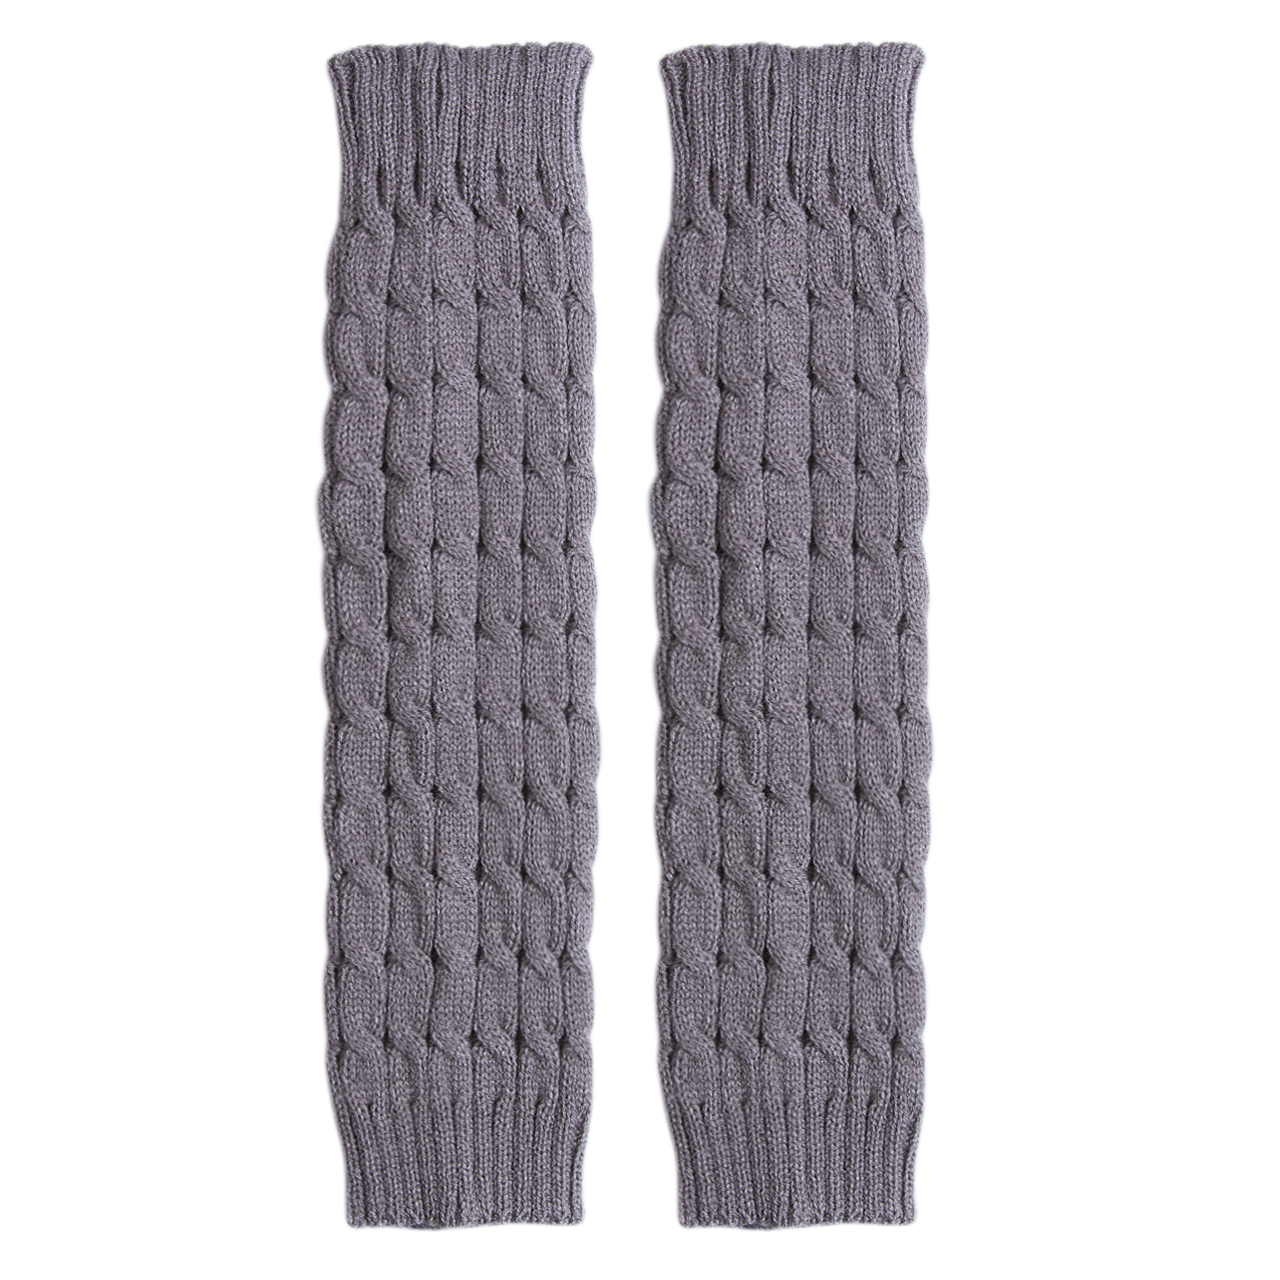 High Winter Knit Long High Boot Socks Knee Knitted Crochet Leg Warmers In Stock Knit Leggings Solid Fashion Clothes